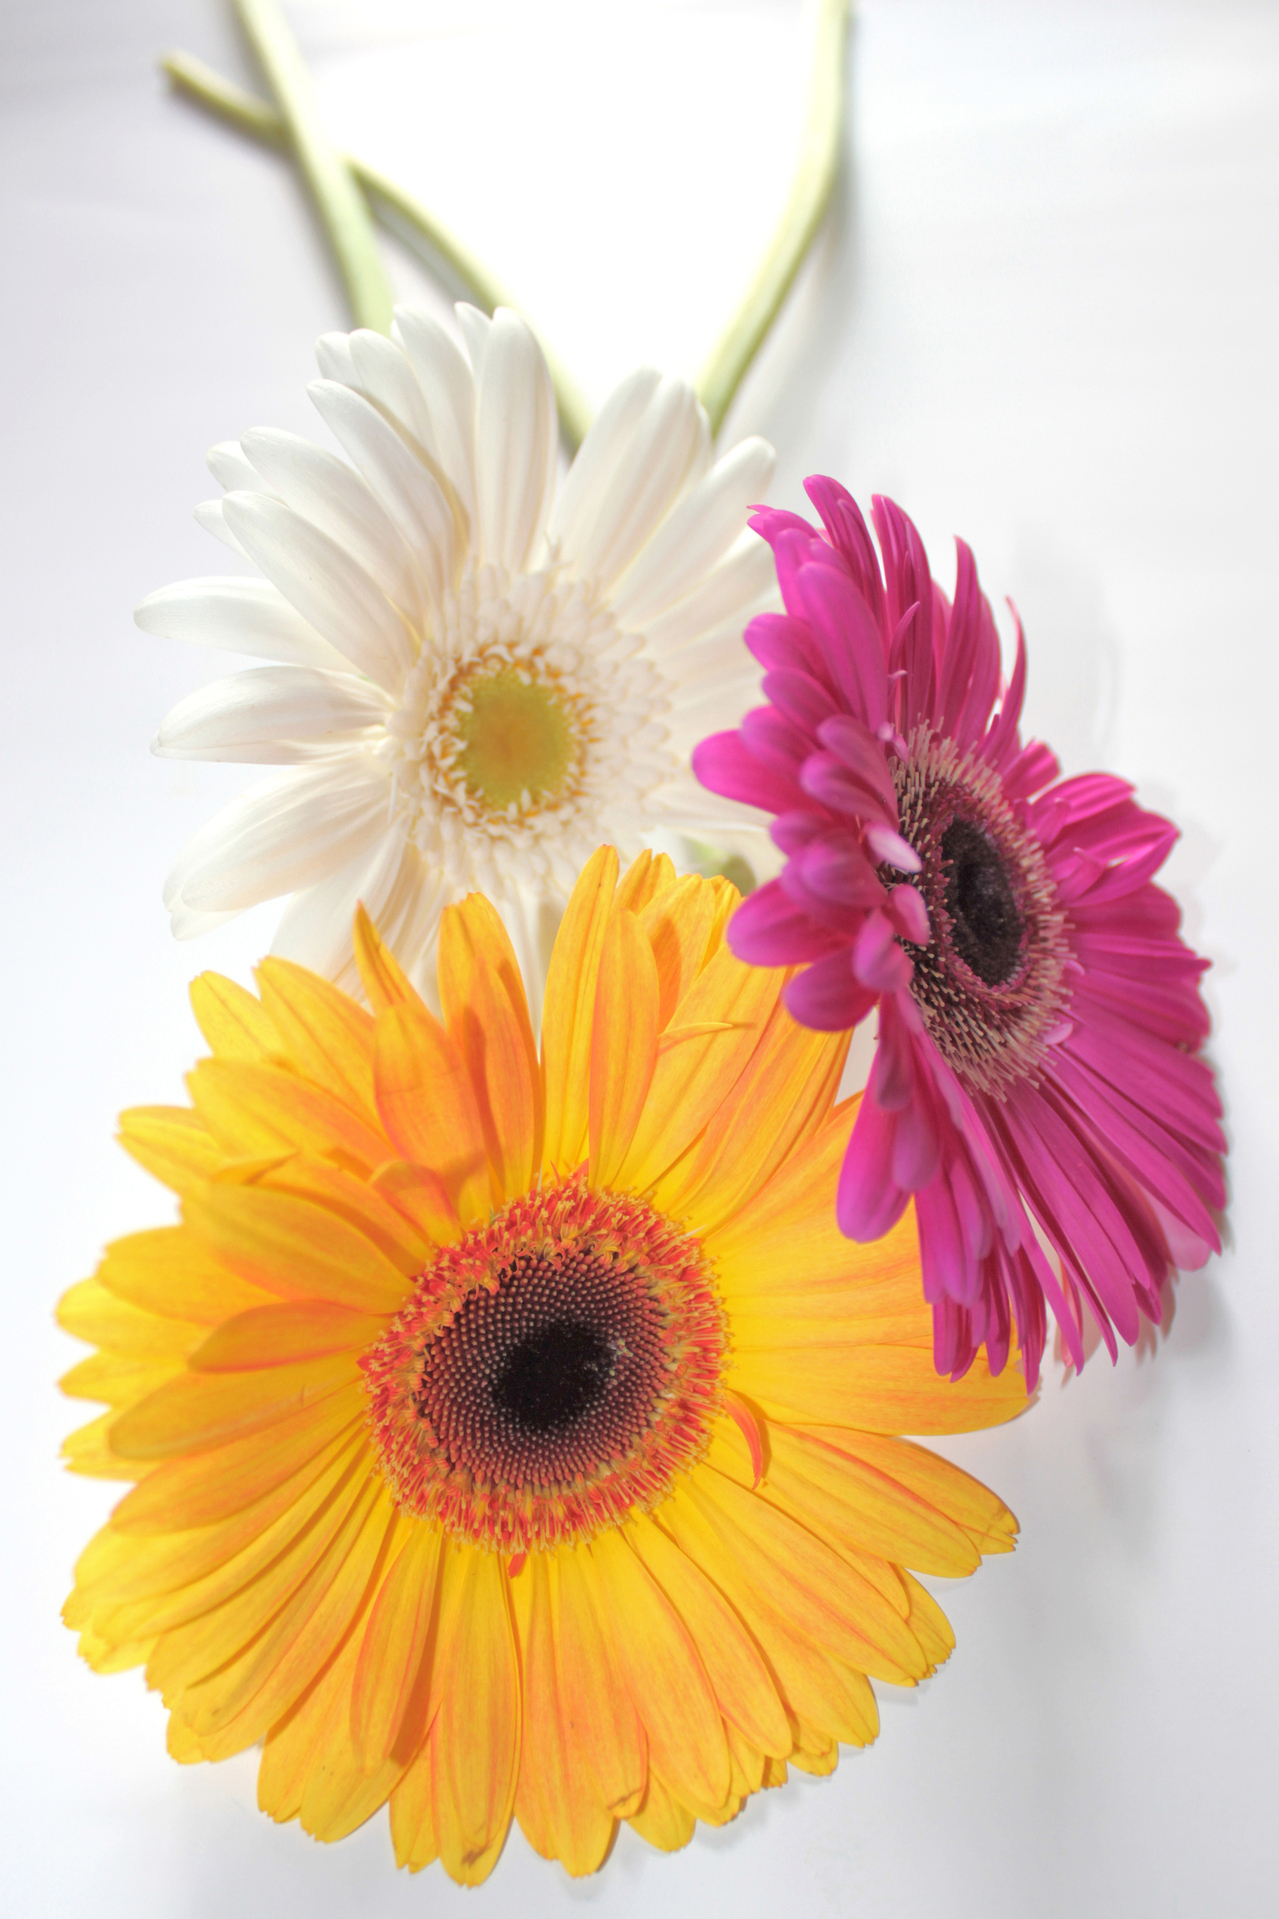 Interesting facts about gerbera daisies flower press gerbera daisy flower facts izmirmasajfo